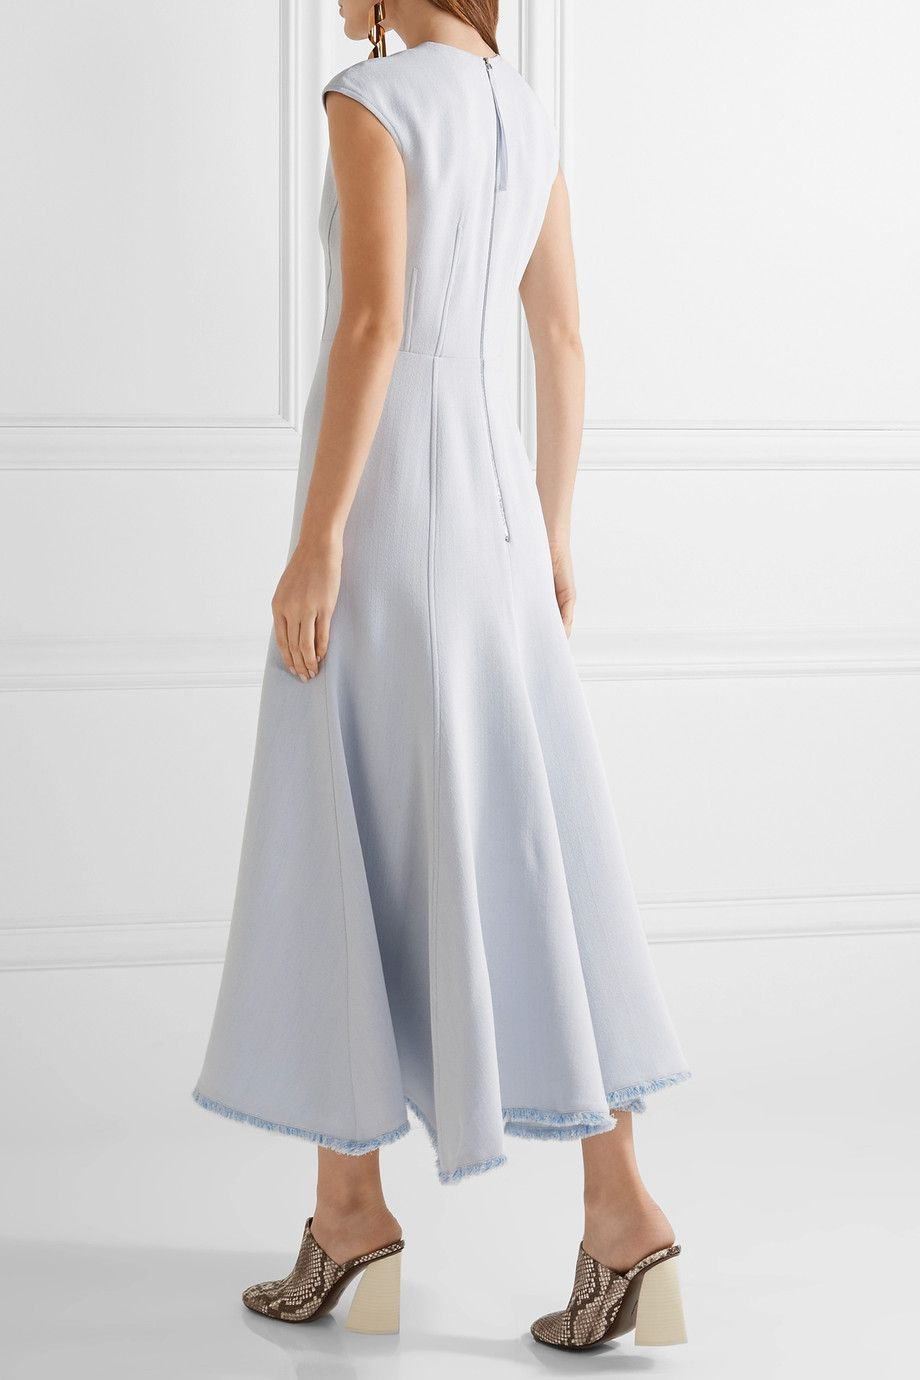 Crowther Frayed Crepe Maxi Dress - Light blue Gabriela Hearst sdwjQSTE